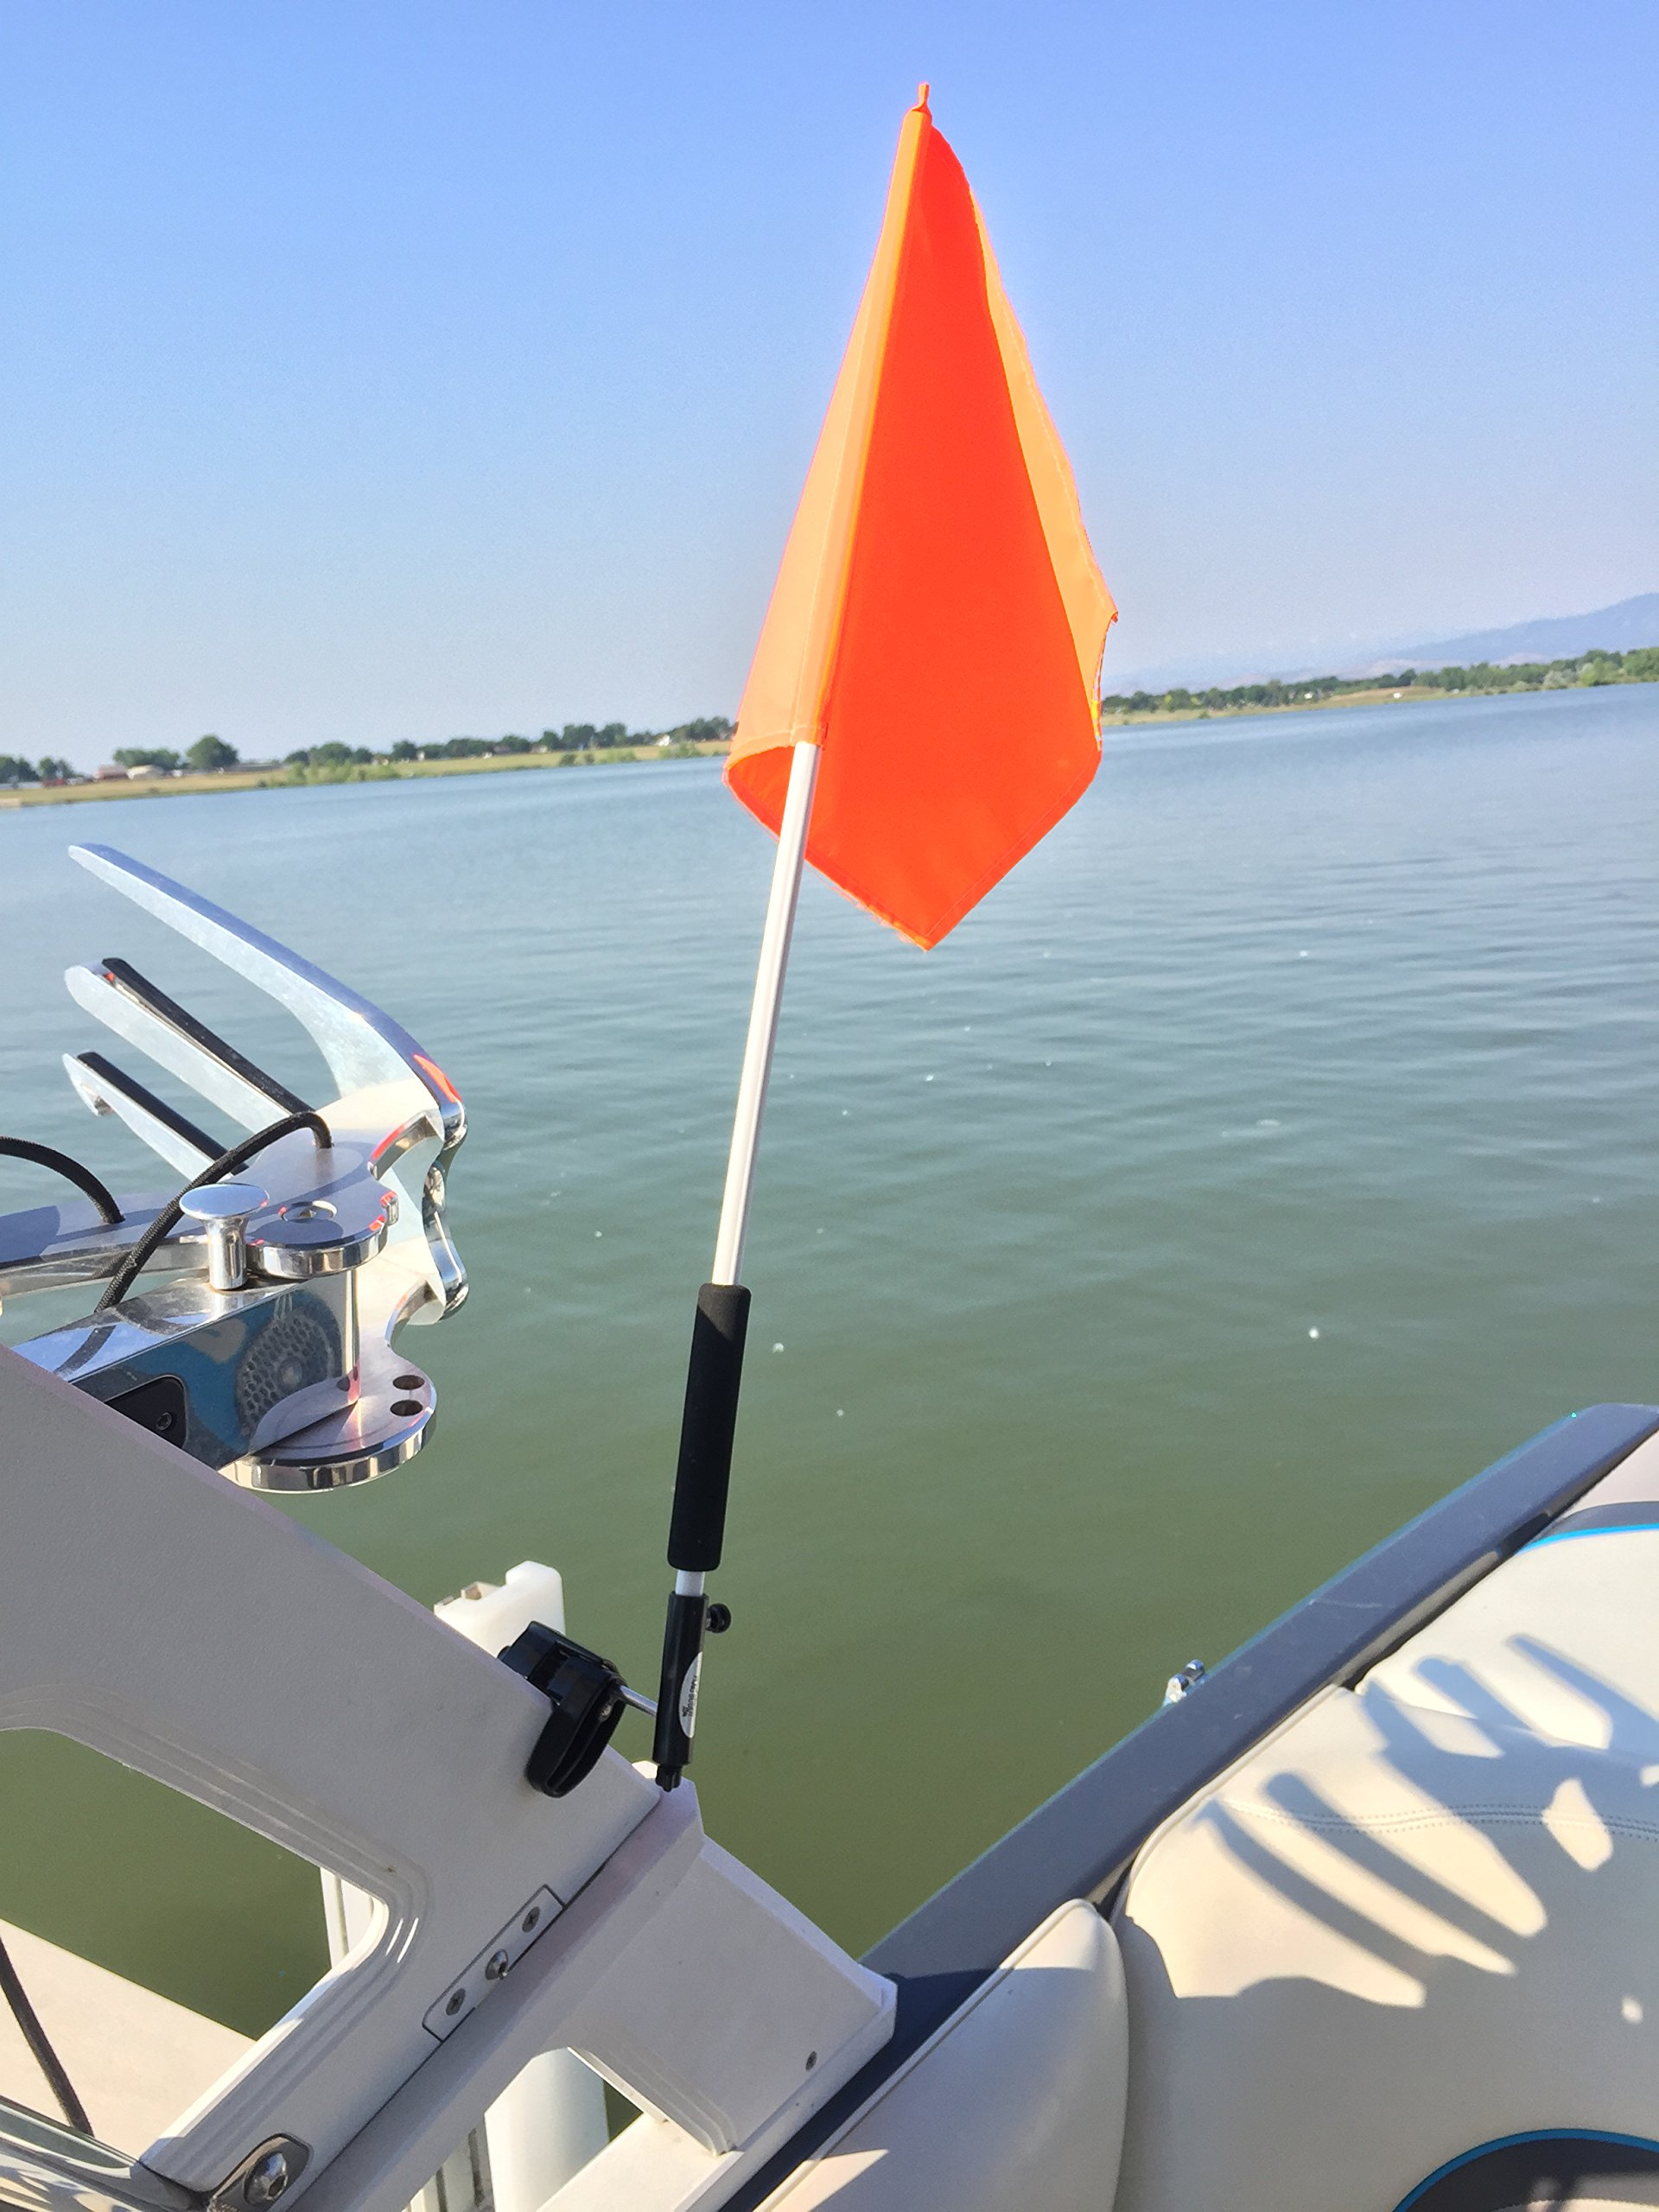 Flag Buddy Skier Down Flag Holder. Flag Included. Orange Safety Flag Included. Tired of Holding The Skier Down Flag? Just clamp The Flag Buddy to Your Window and Rotate it up When Required.